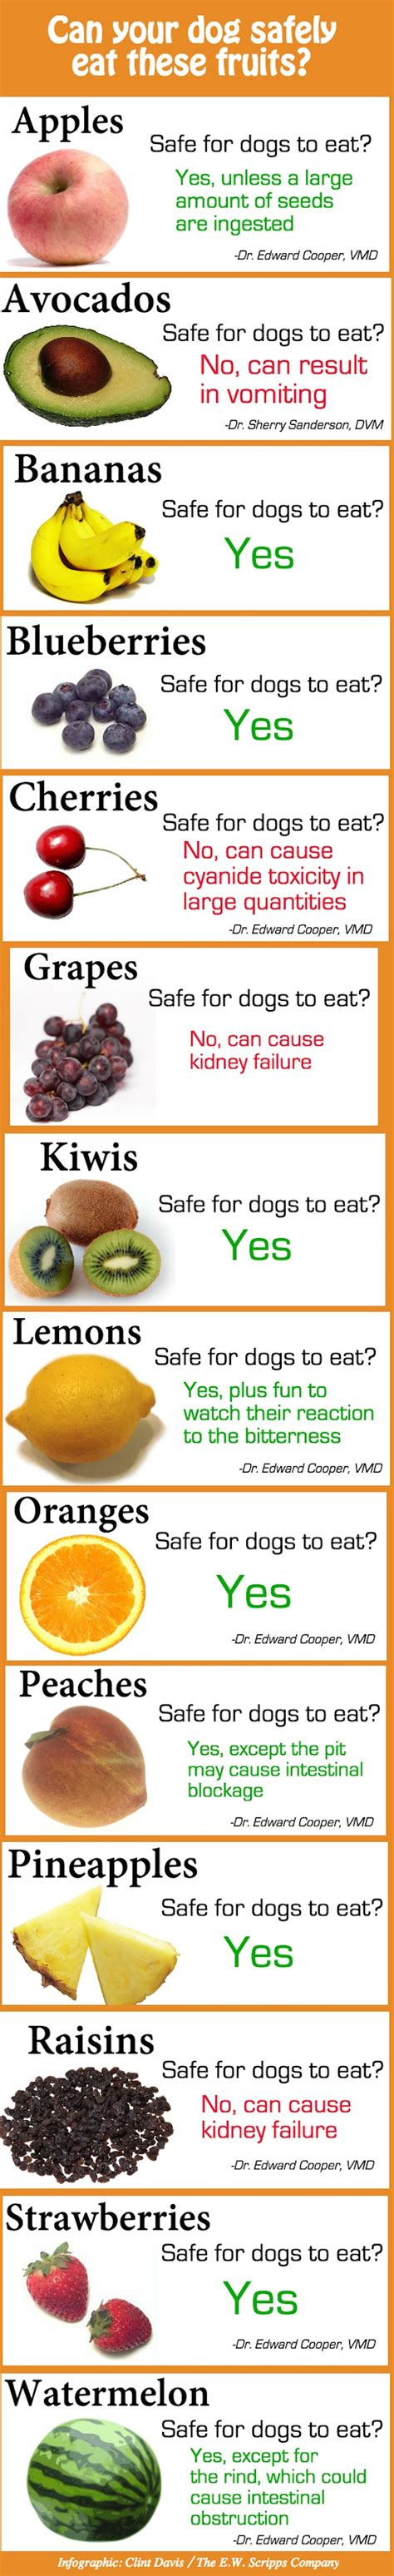 cherries for dogs infographic fruits that are safe and unsafe for your to consume designtaxi